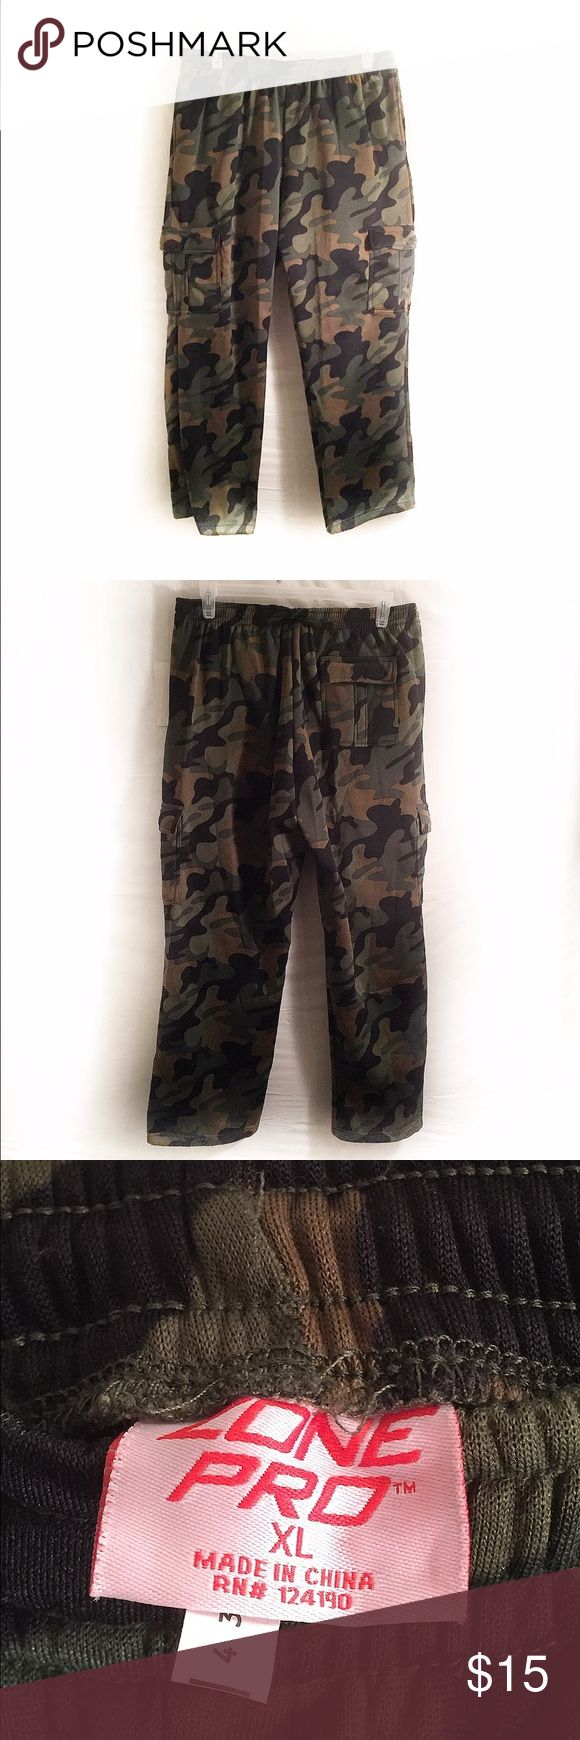 Size XL. Men's Camo Pants. Size XL. Zone Pro. Mens camo pants. 2 pockets on the side, 2 on leg,& 1 on rear. New but tag is torn off. Zone Pro Pants Sweatpants & Joggers